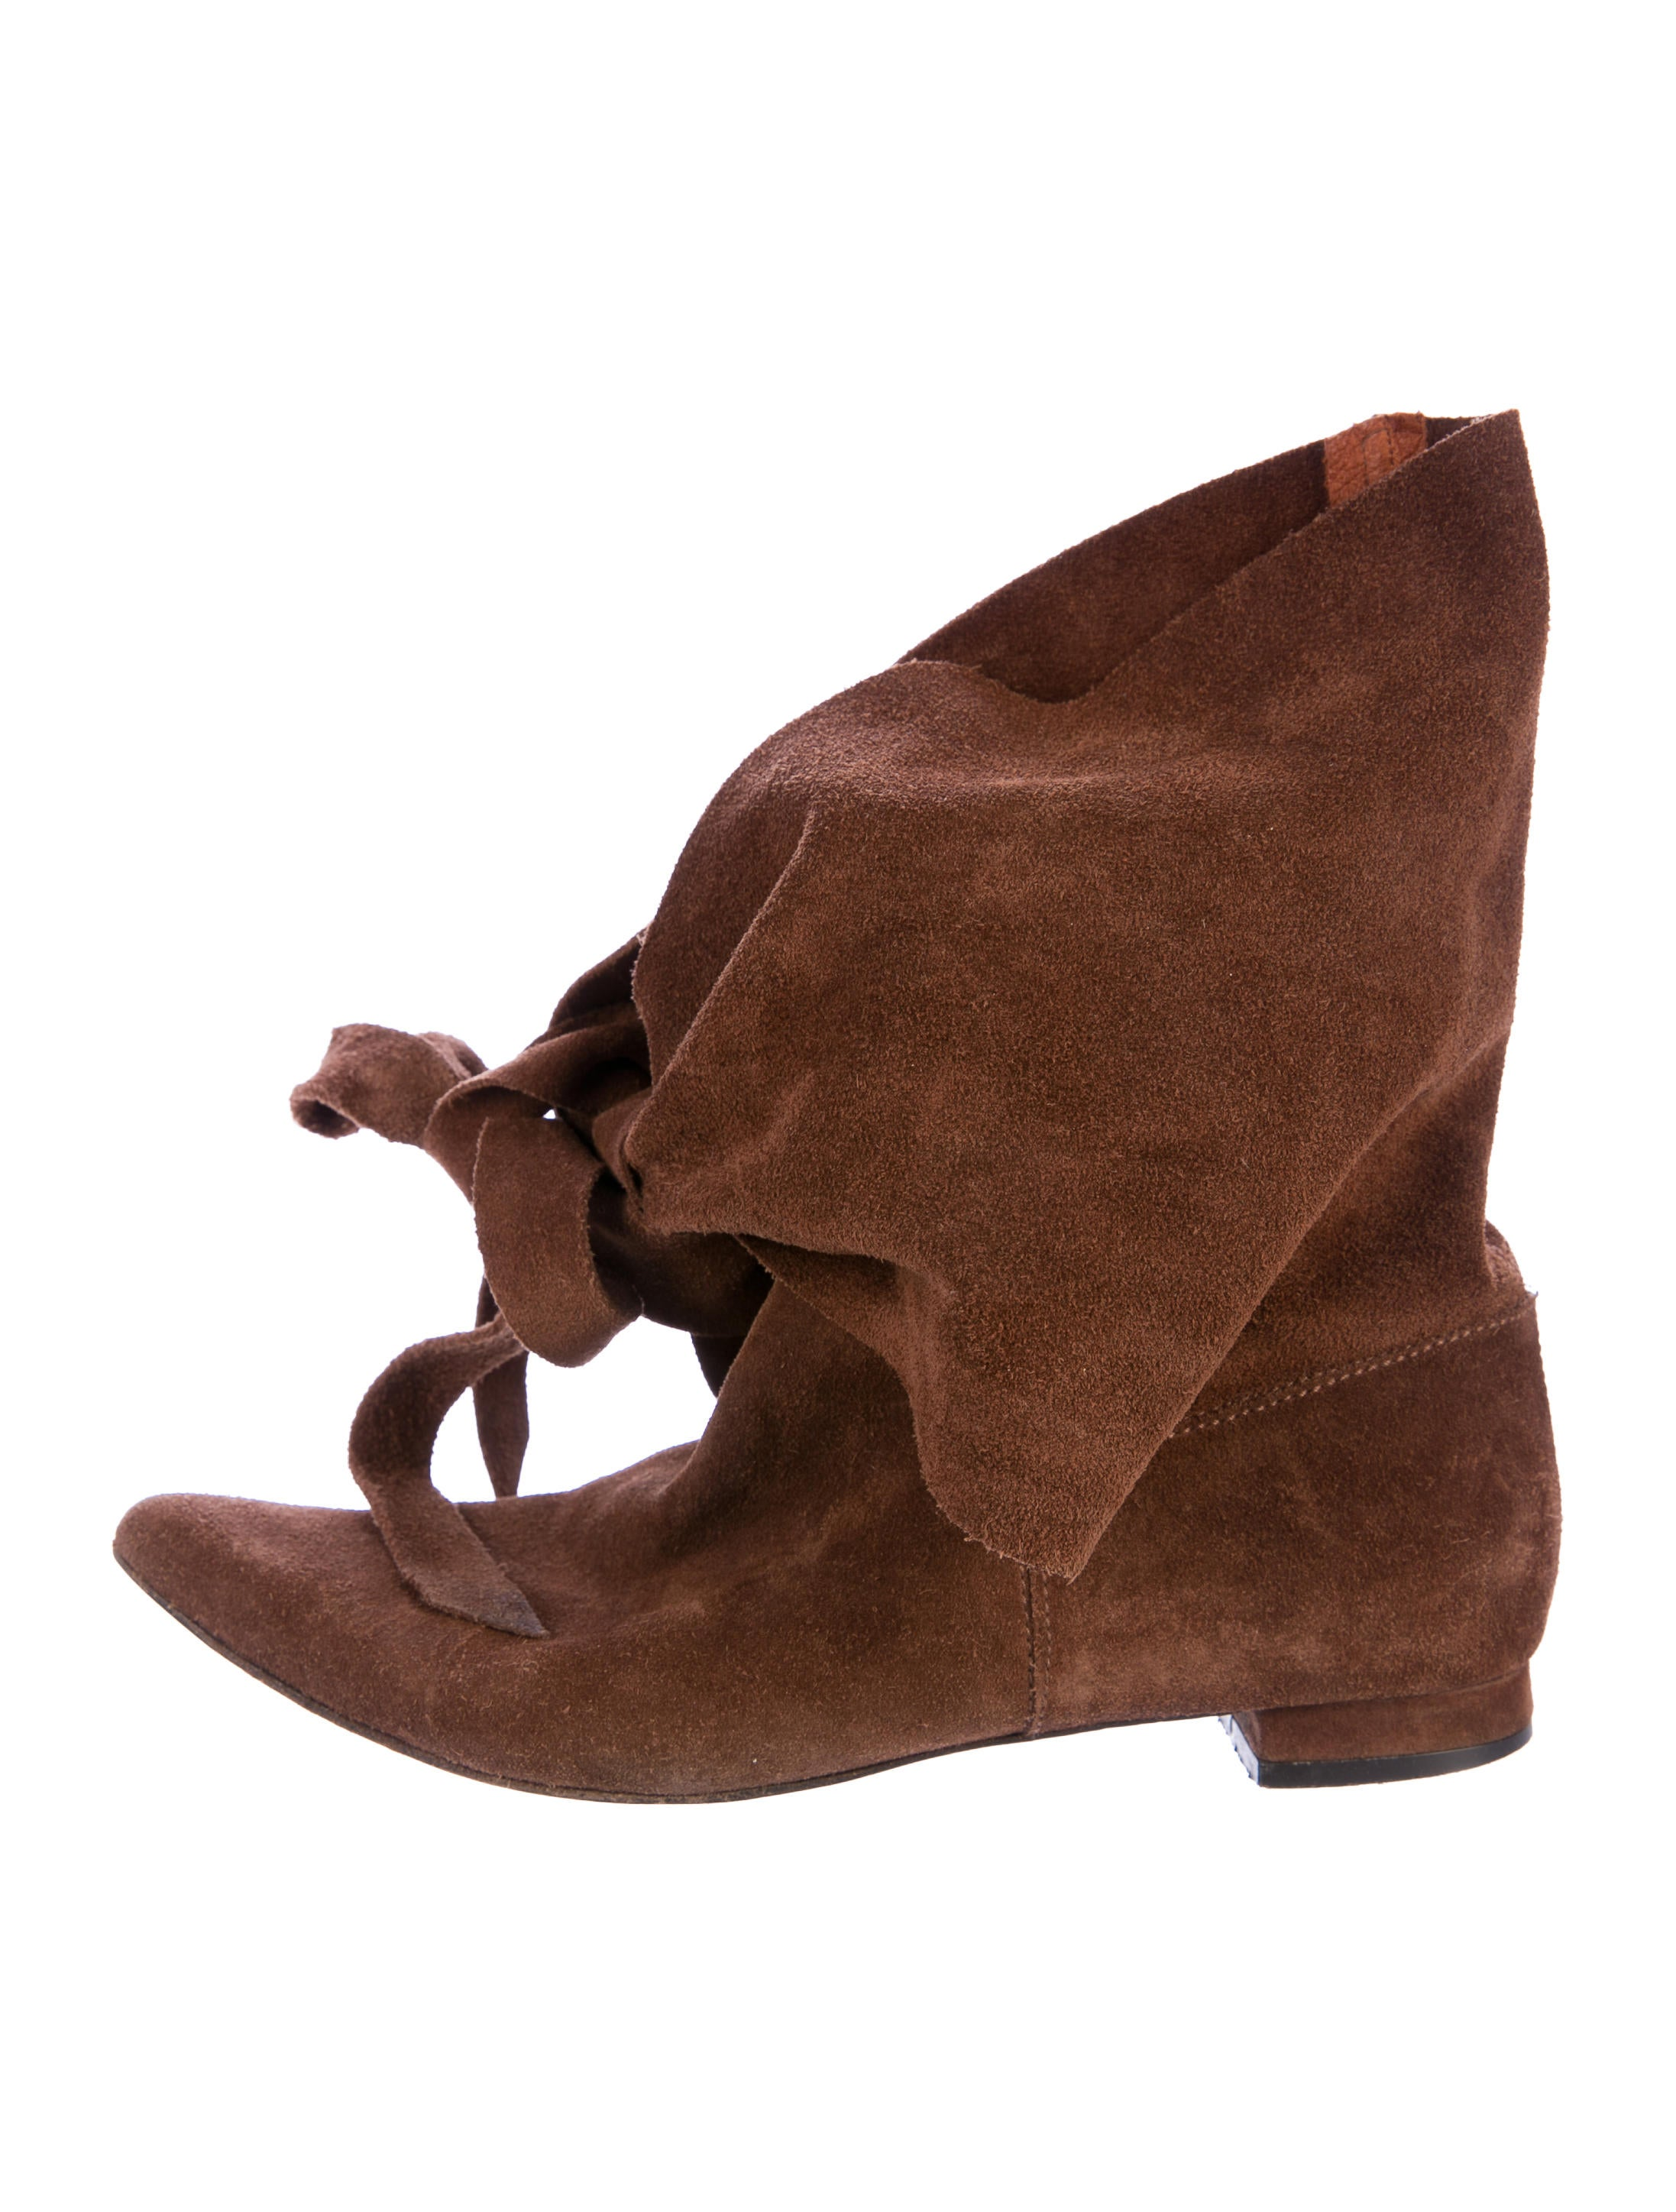 Delman Suede Pointed-Toe Mid-Calf Boots many kinds of sale online oYT0aGRA